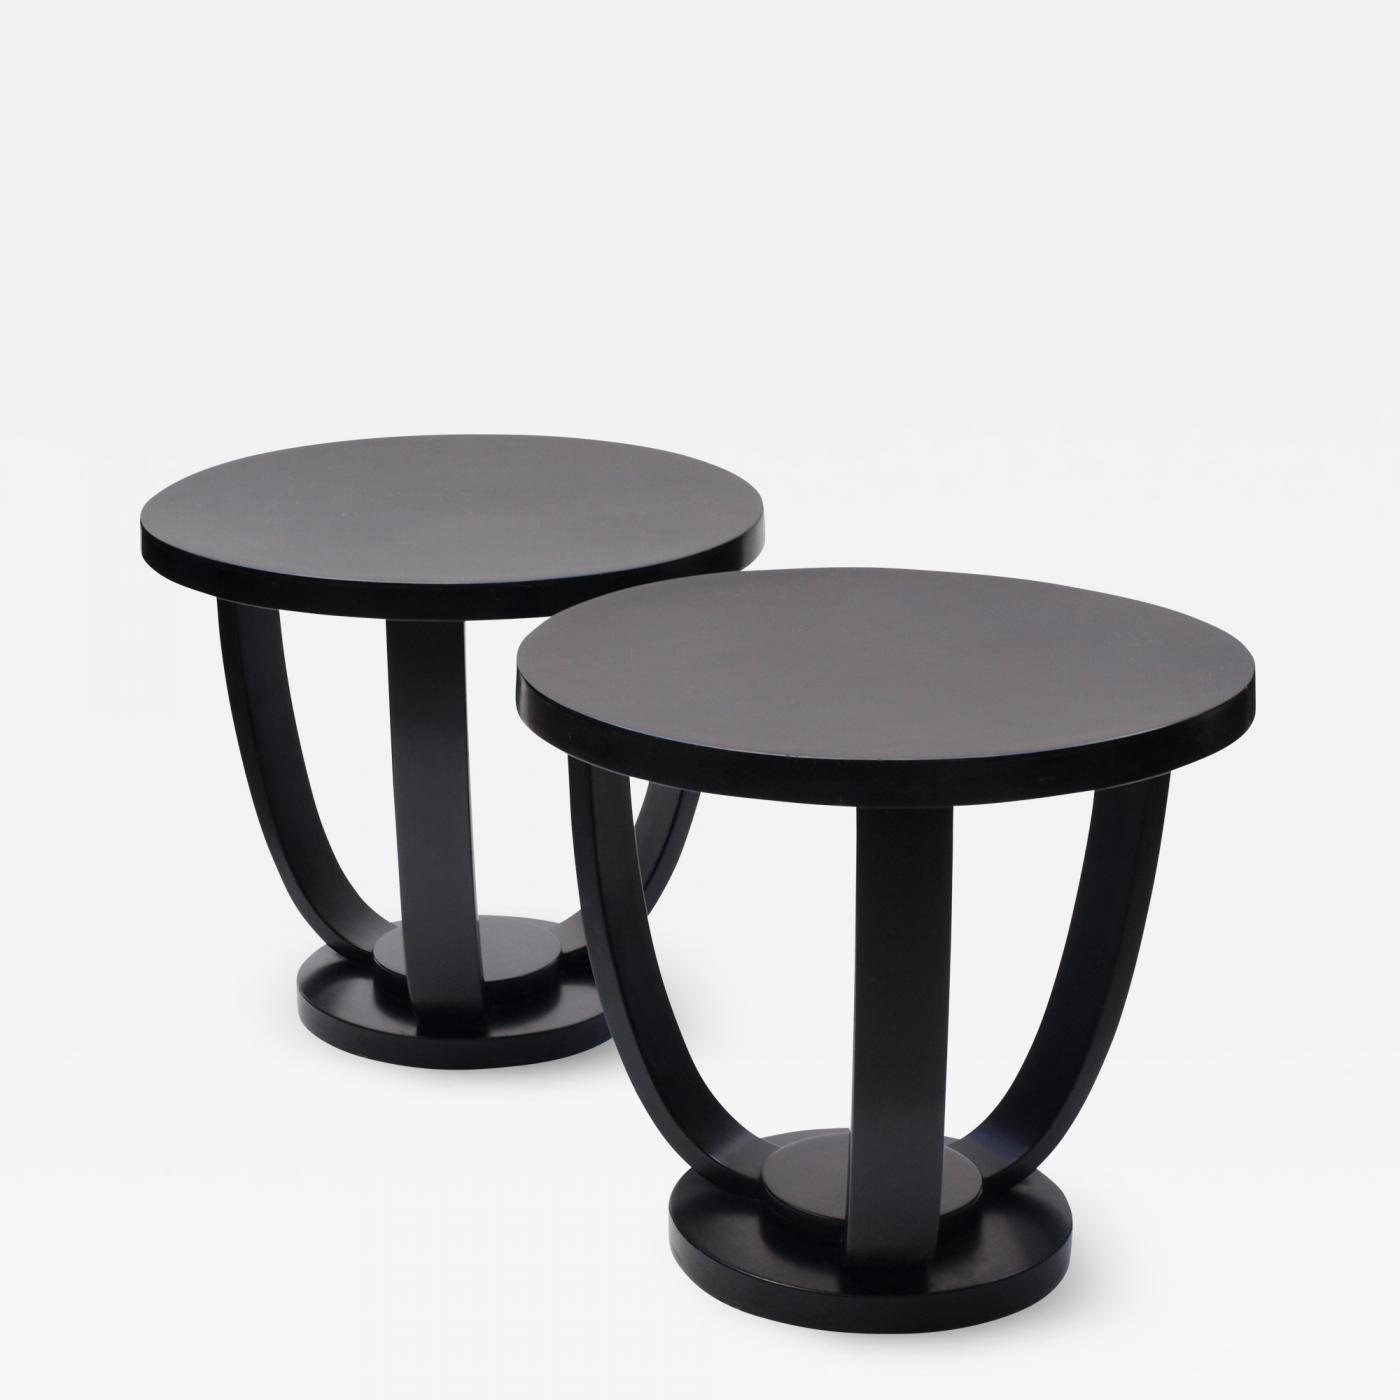 size 40 9a073 d2fc1 Fischel - A Pair of 1930s Circular Black Bent Wood Side Tables